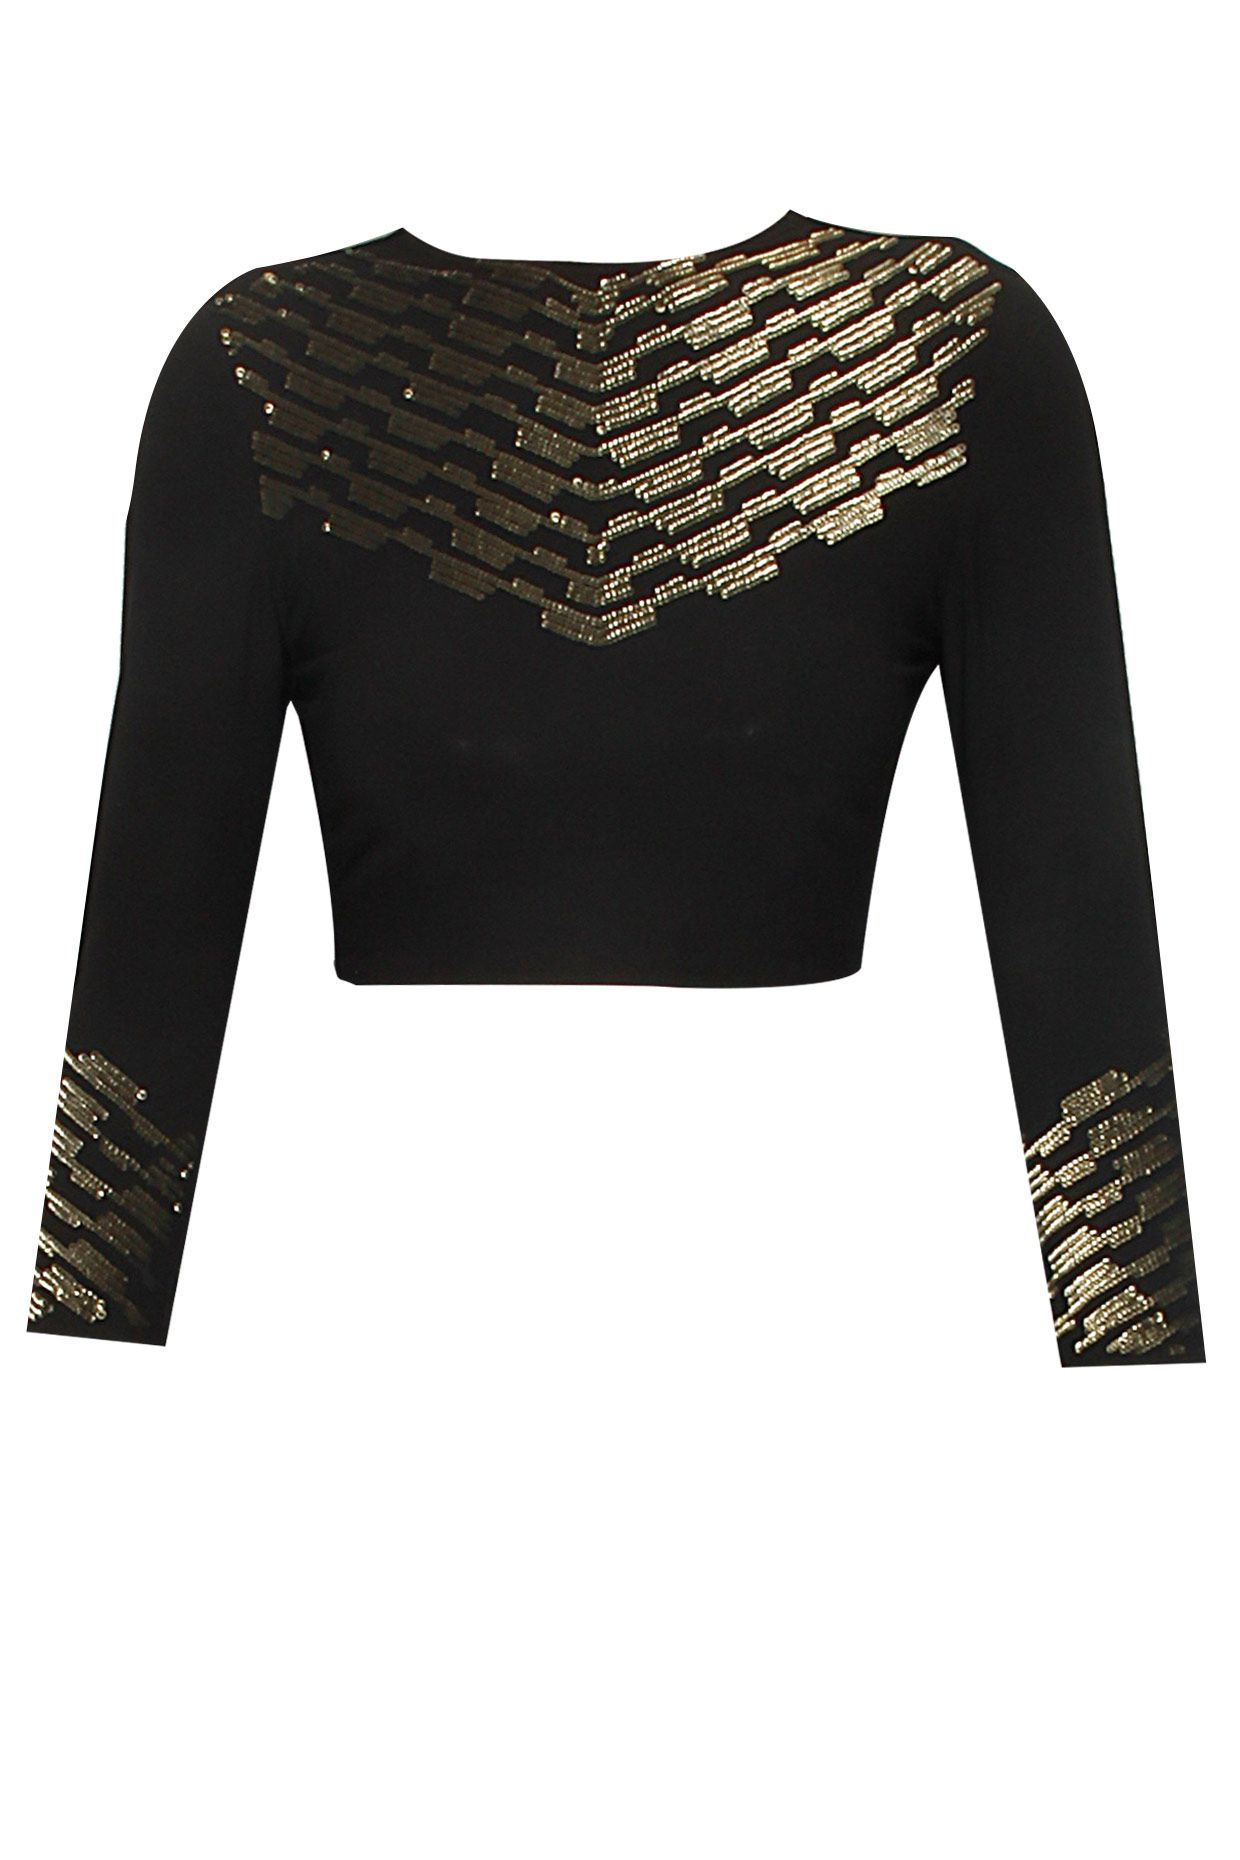 d2c8238caa Black and gold sequins embellished civil lines blouse available only at  Pernia's Pop Up Shop.